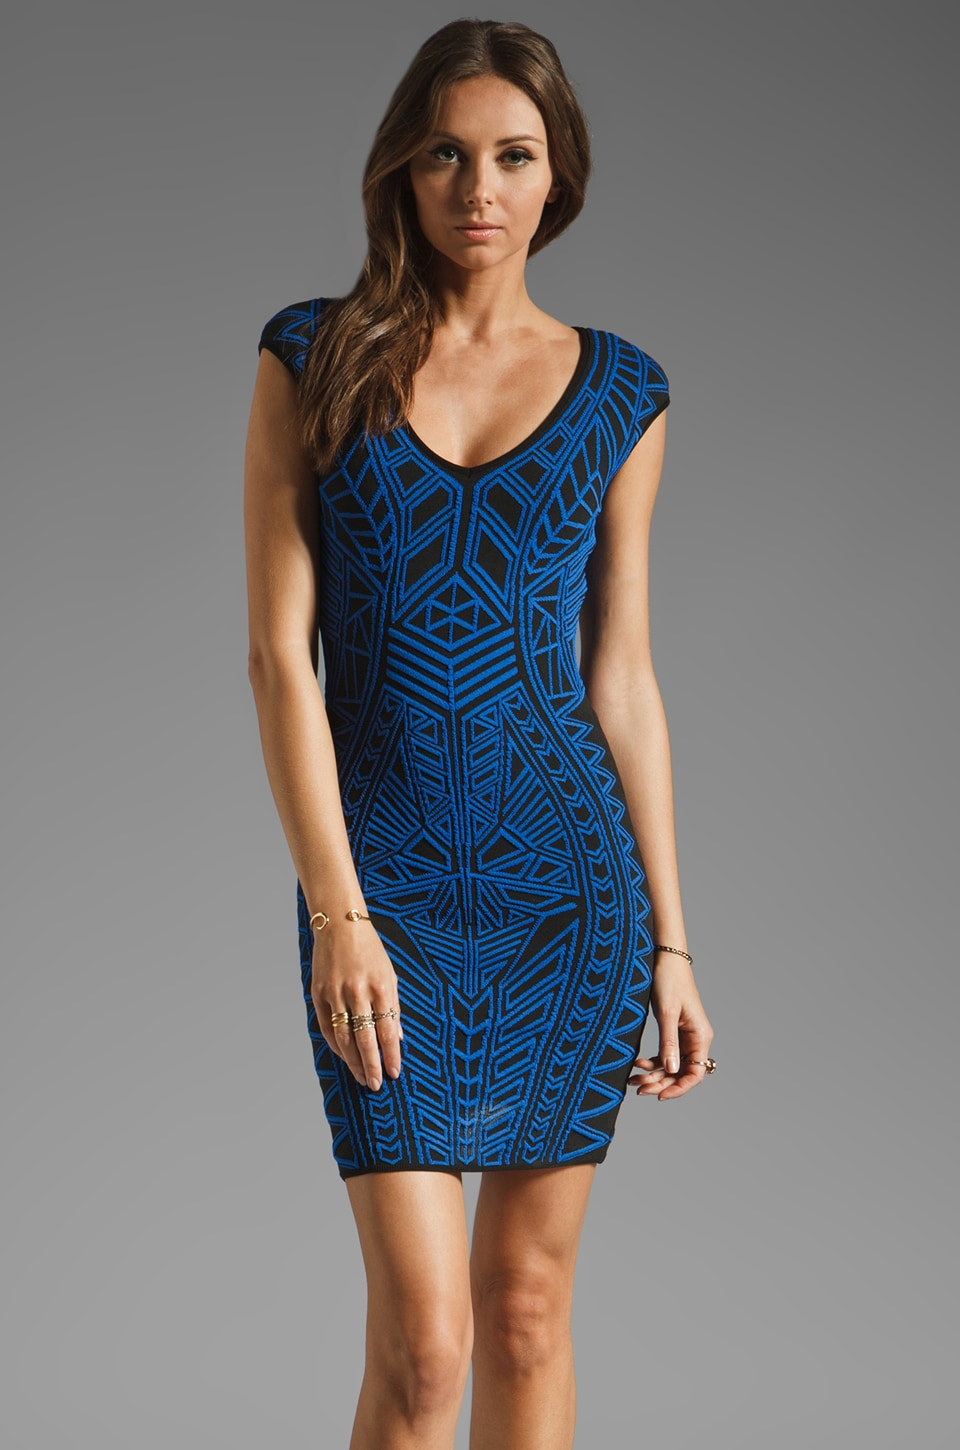 RVN Abstract Jacquard Mini Dress in Black/Blue